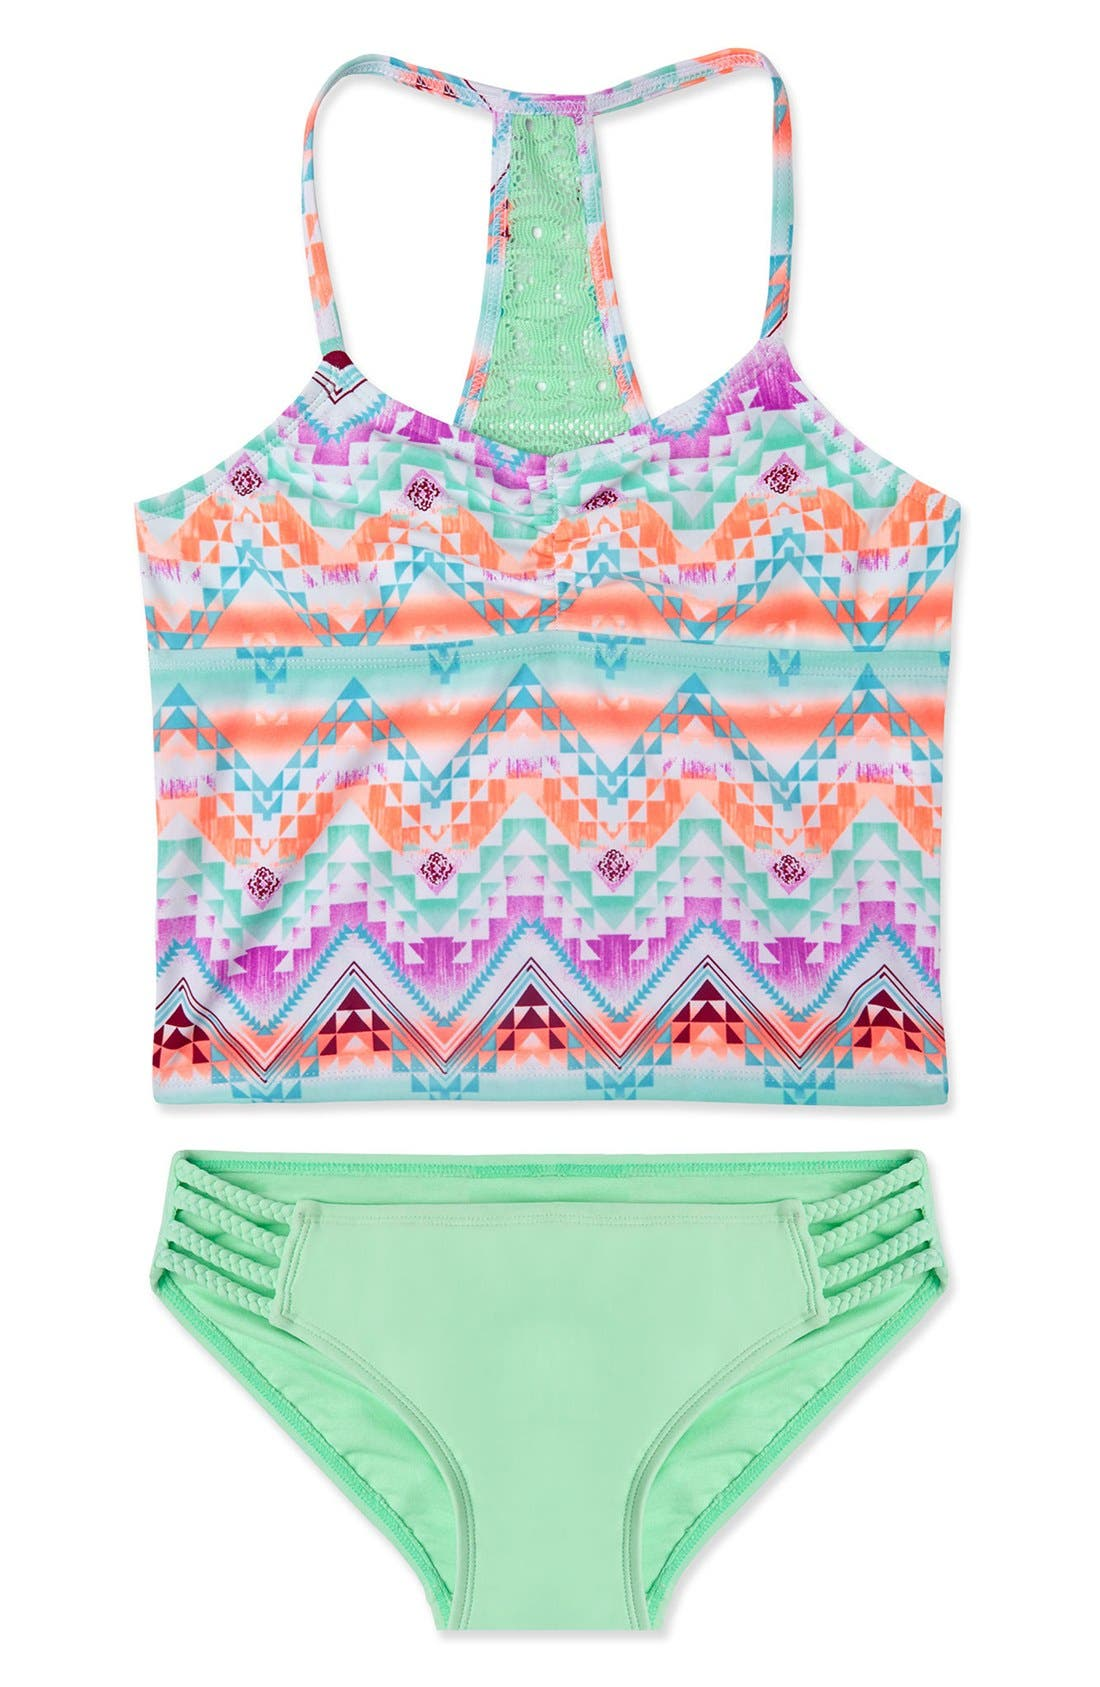 GOSSIP GIRL 'Desert Mirage' Two-Piece Swimsuit Set